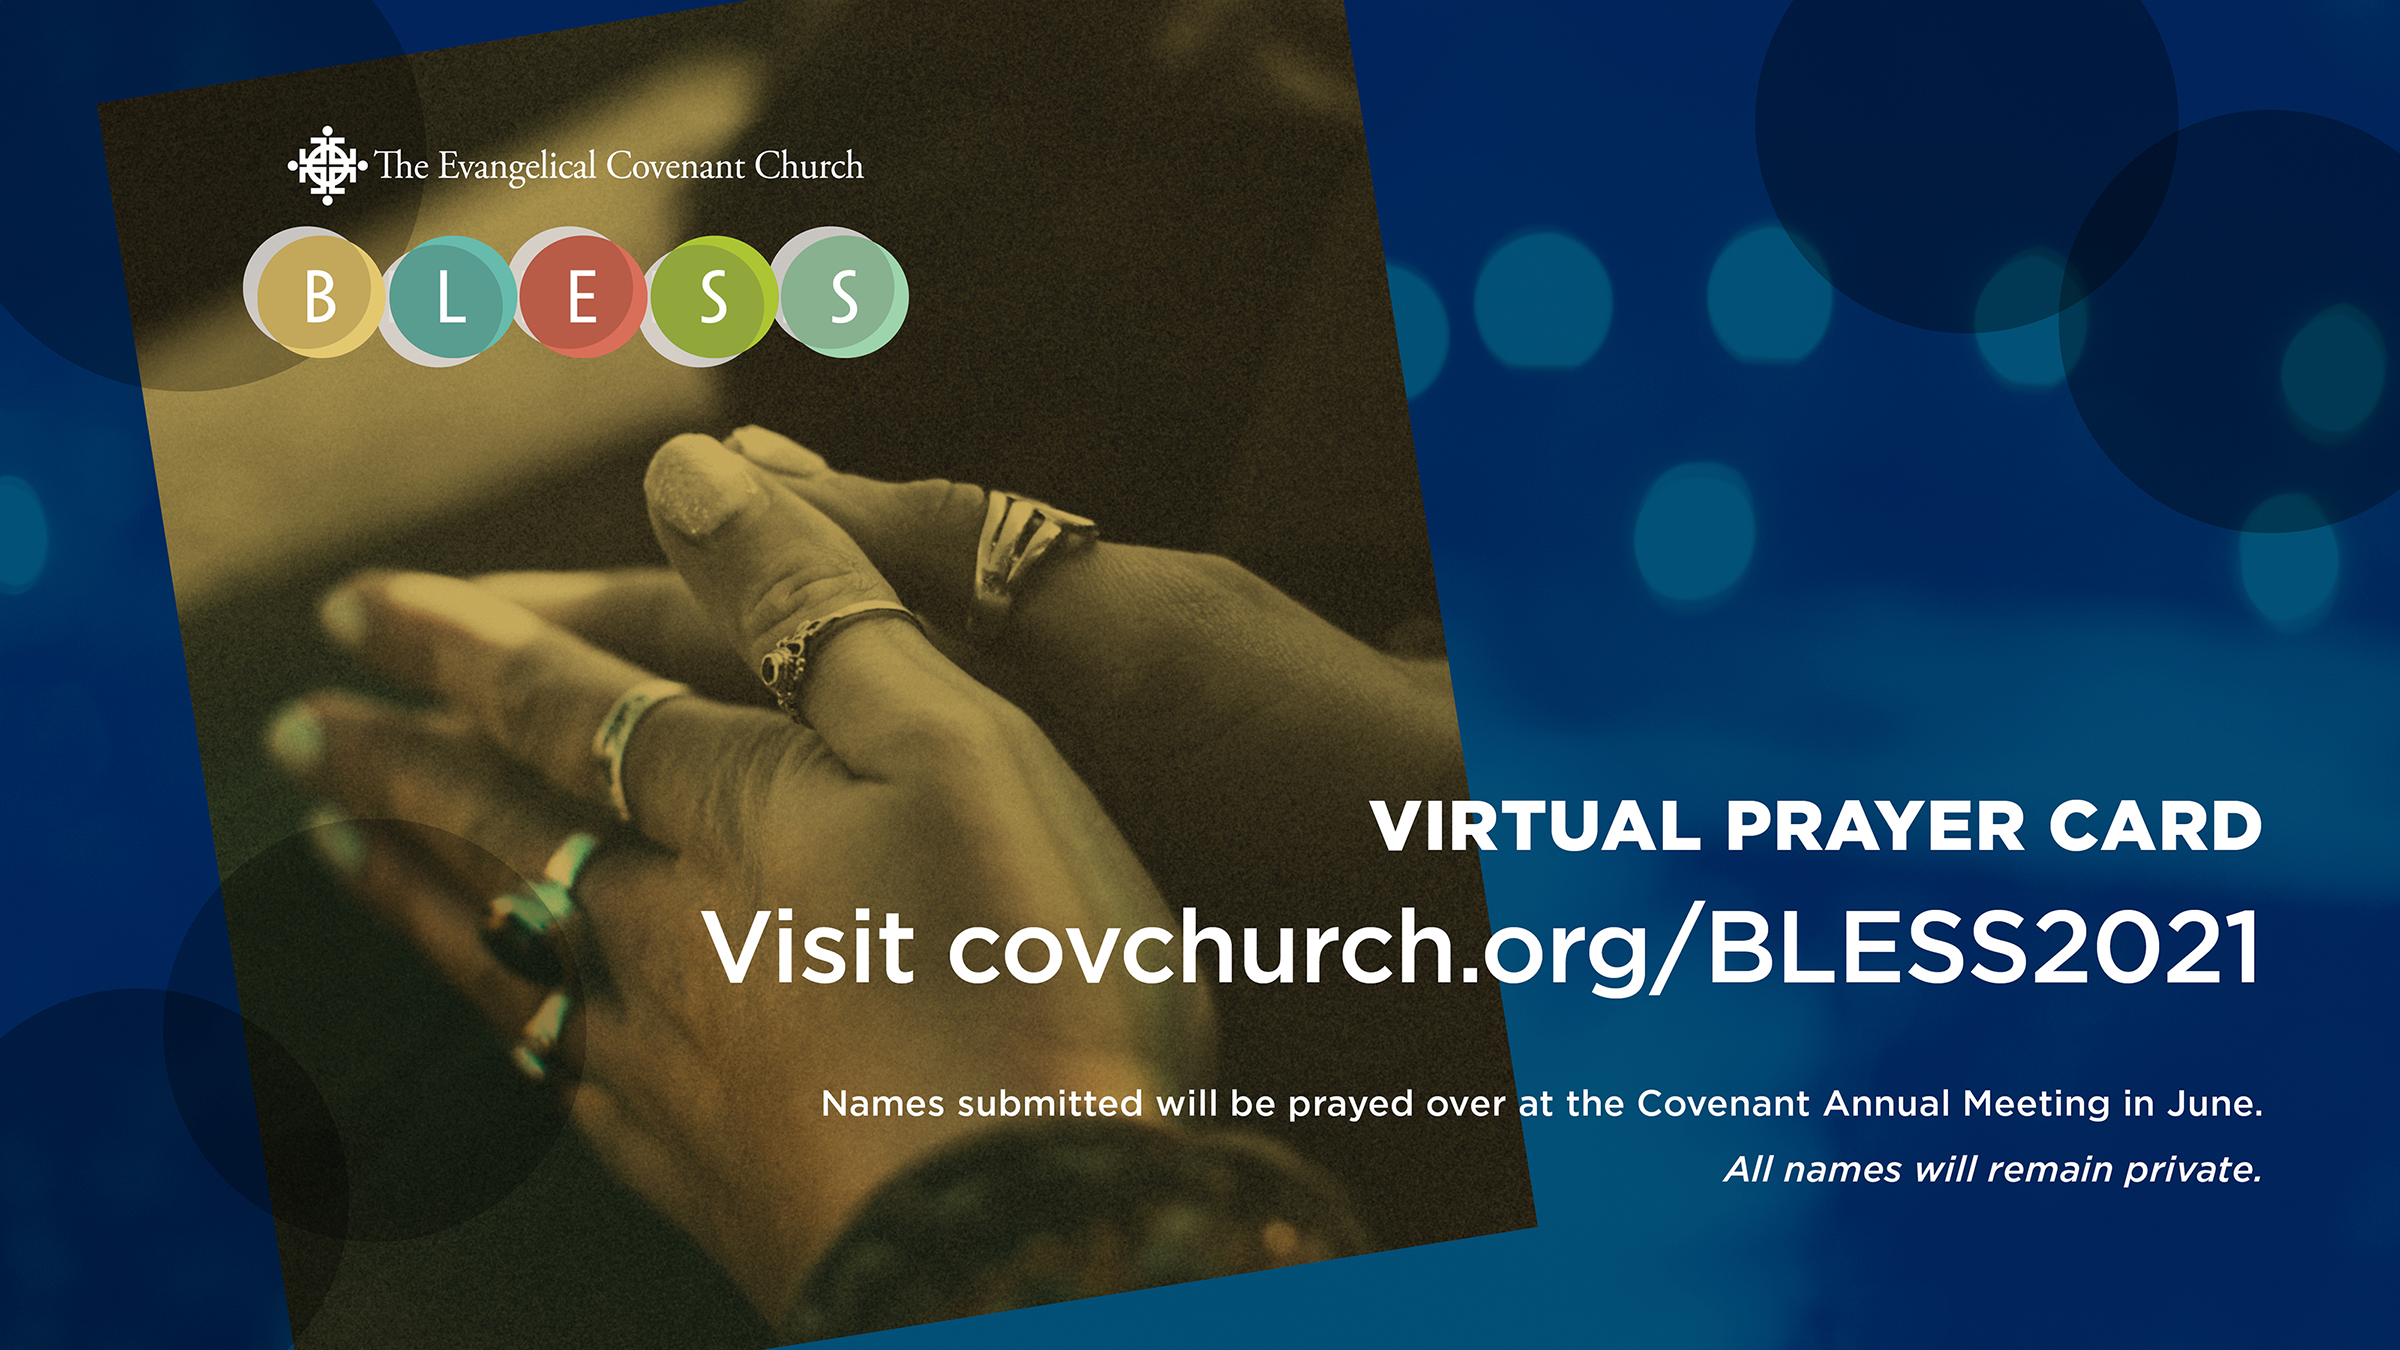 ECC-BLESS-Virtual-Prayer-Card-2021